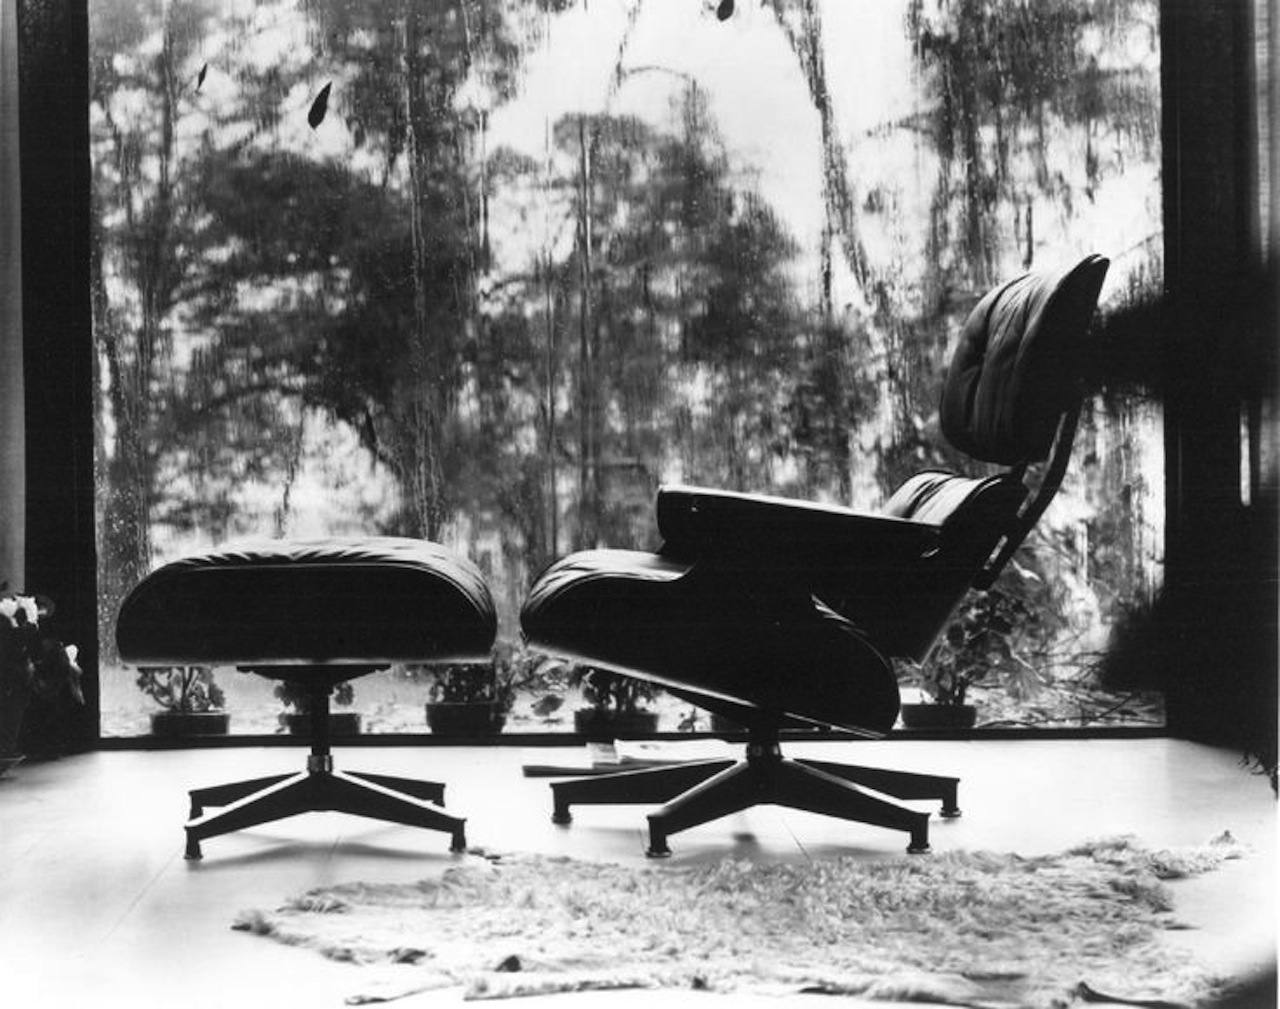 The Eames Chair in black and white